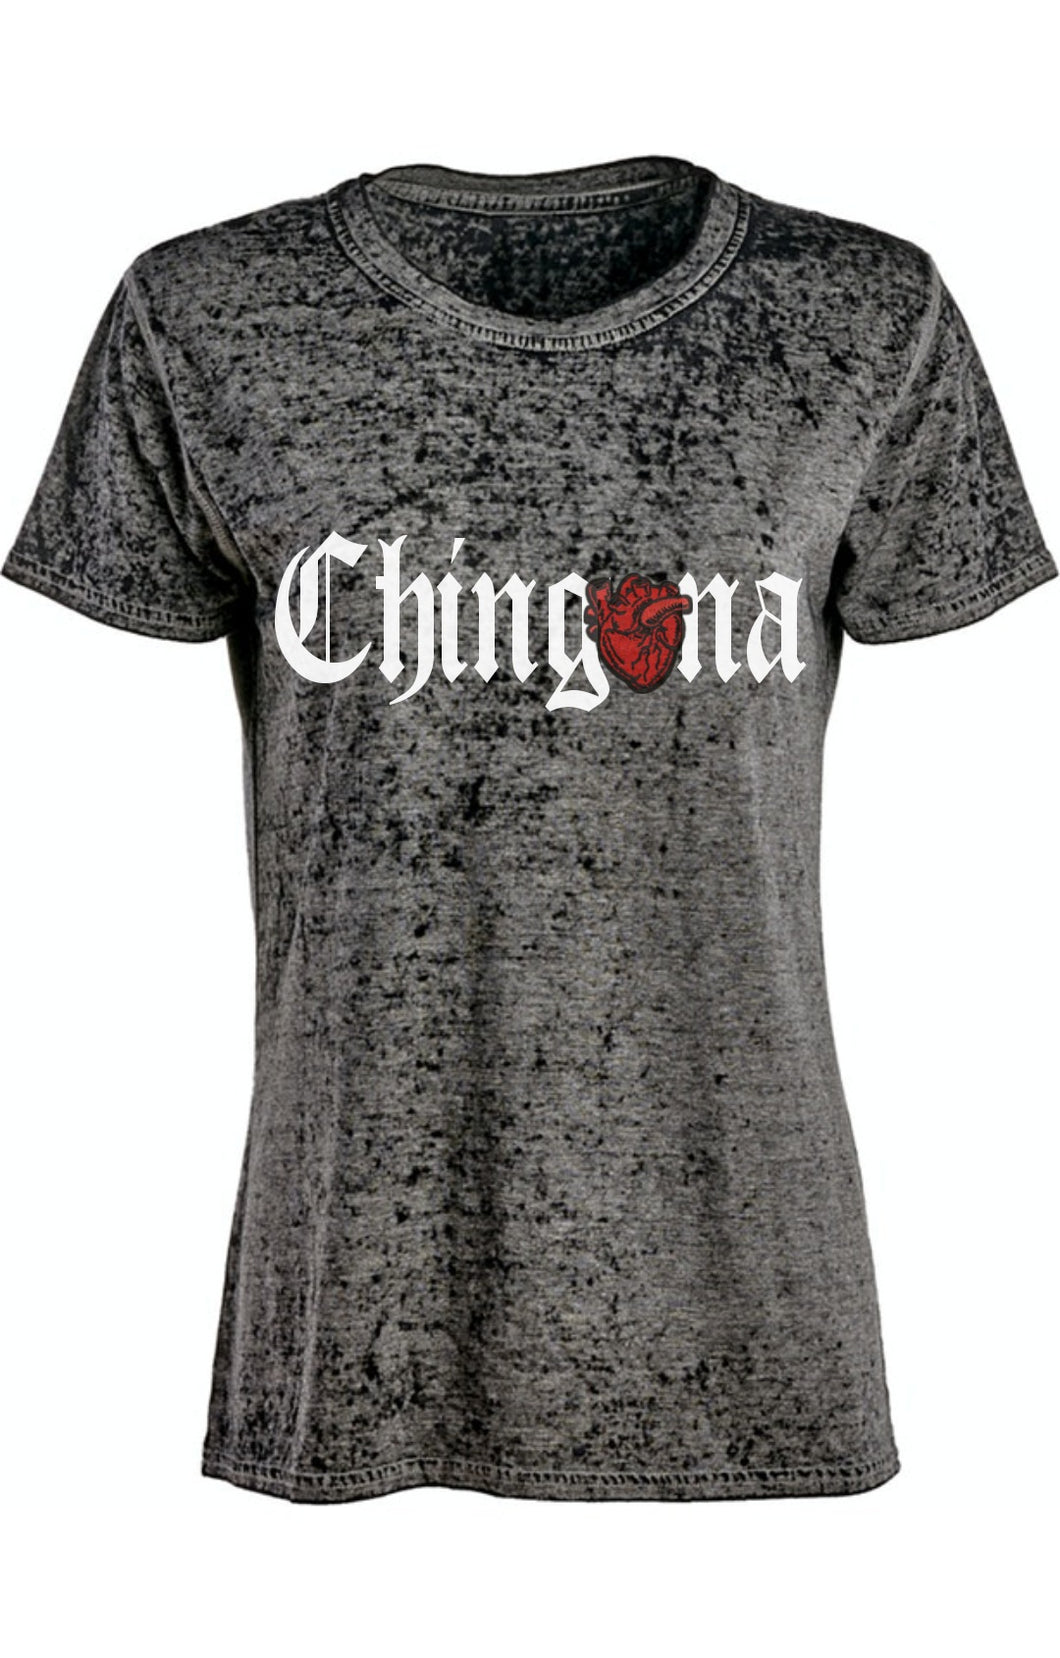 Chingona Corazon T Shirt